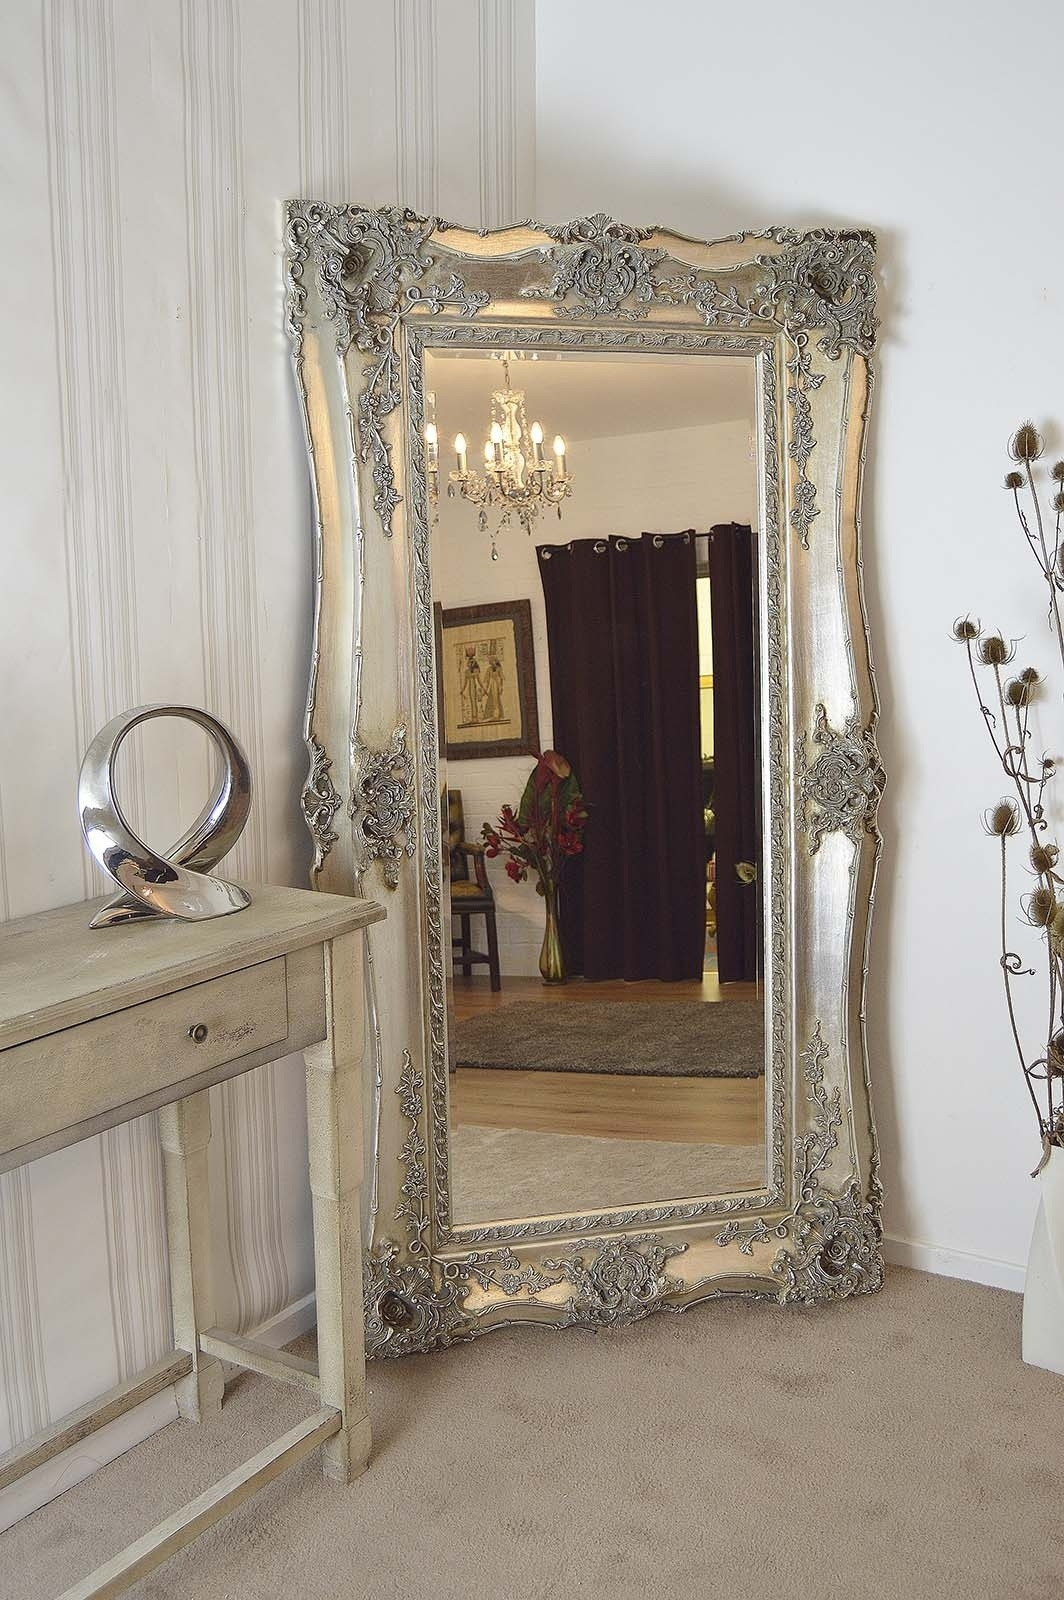 Extra Large Very Ornate Full Length Antique Silver Big Wall Mirror Inside Full Length Antique Mirror (Image 9 of 15)